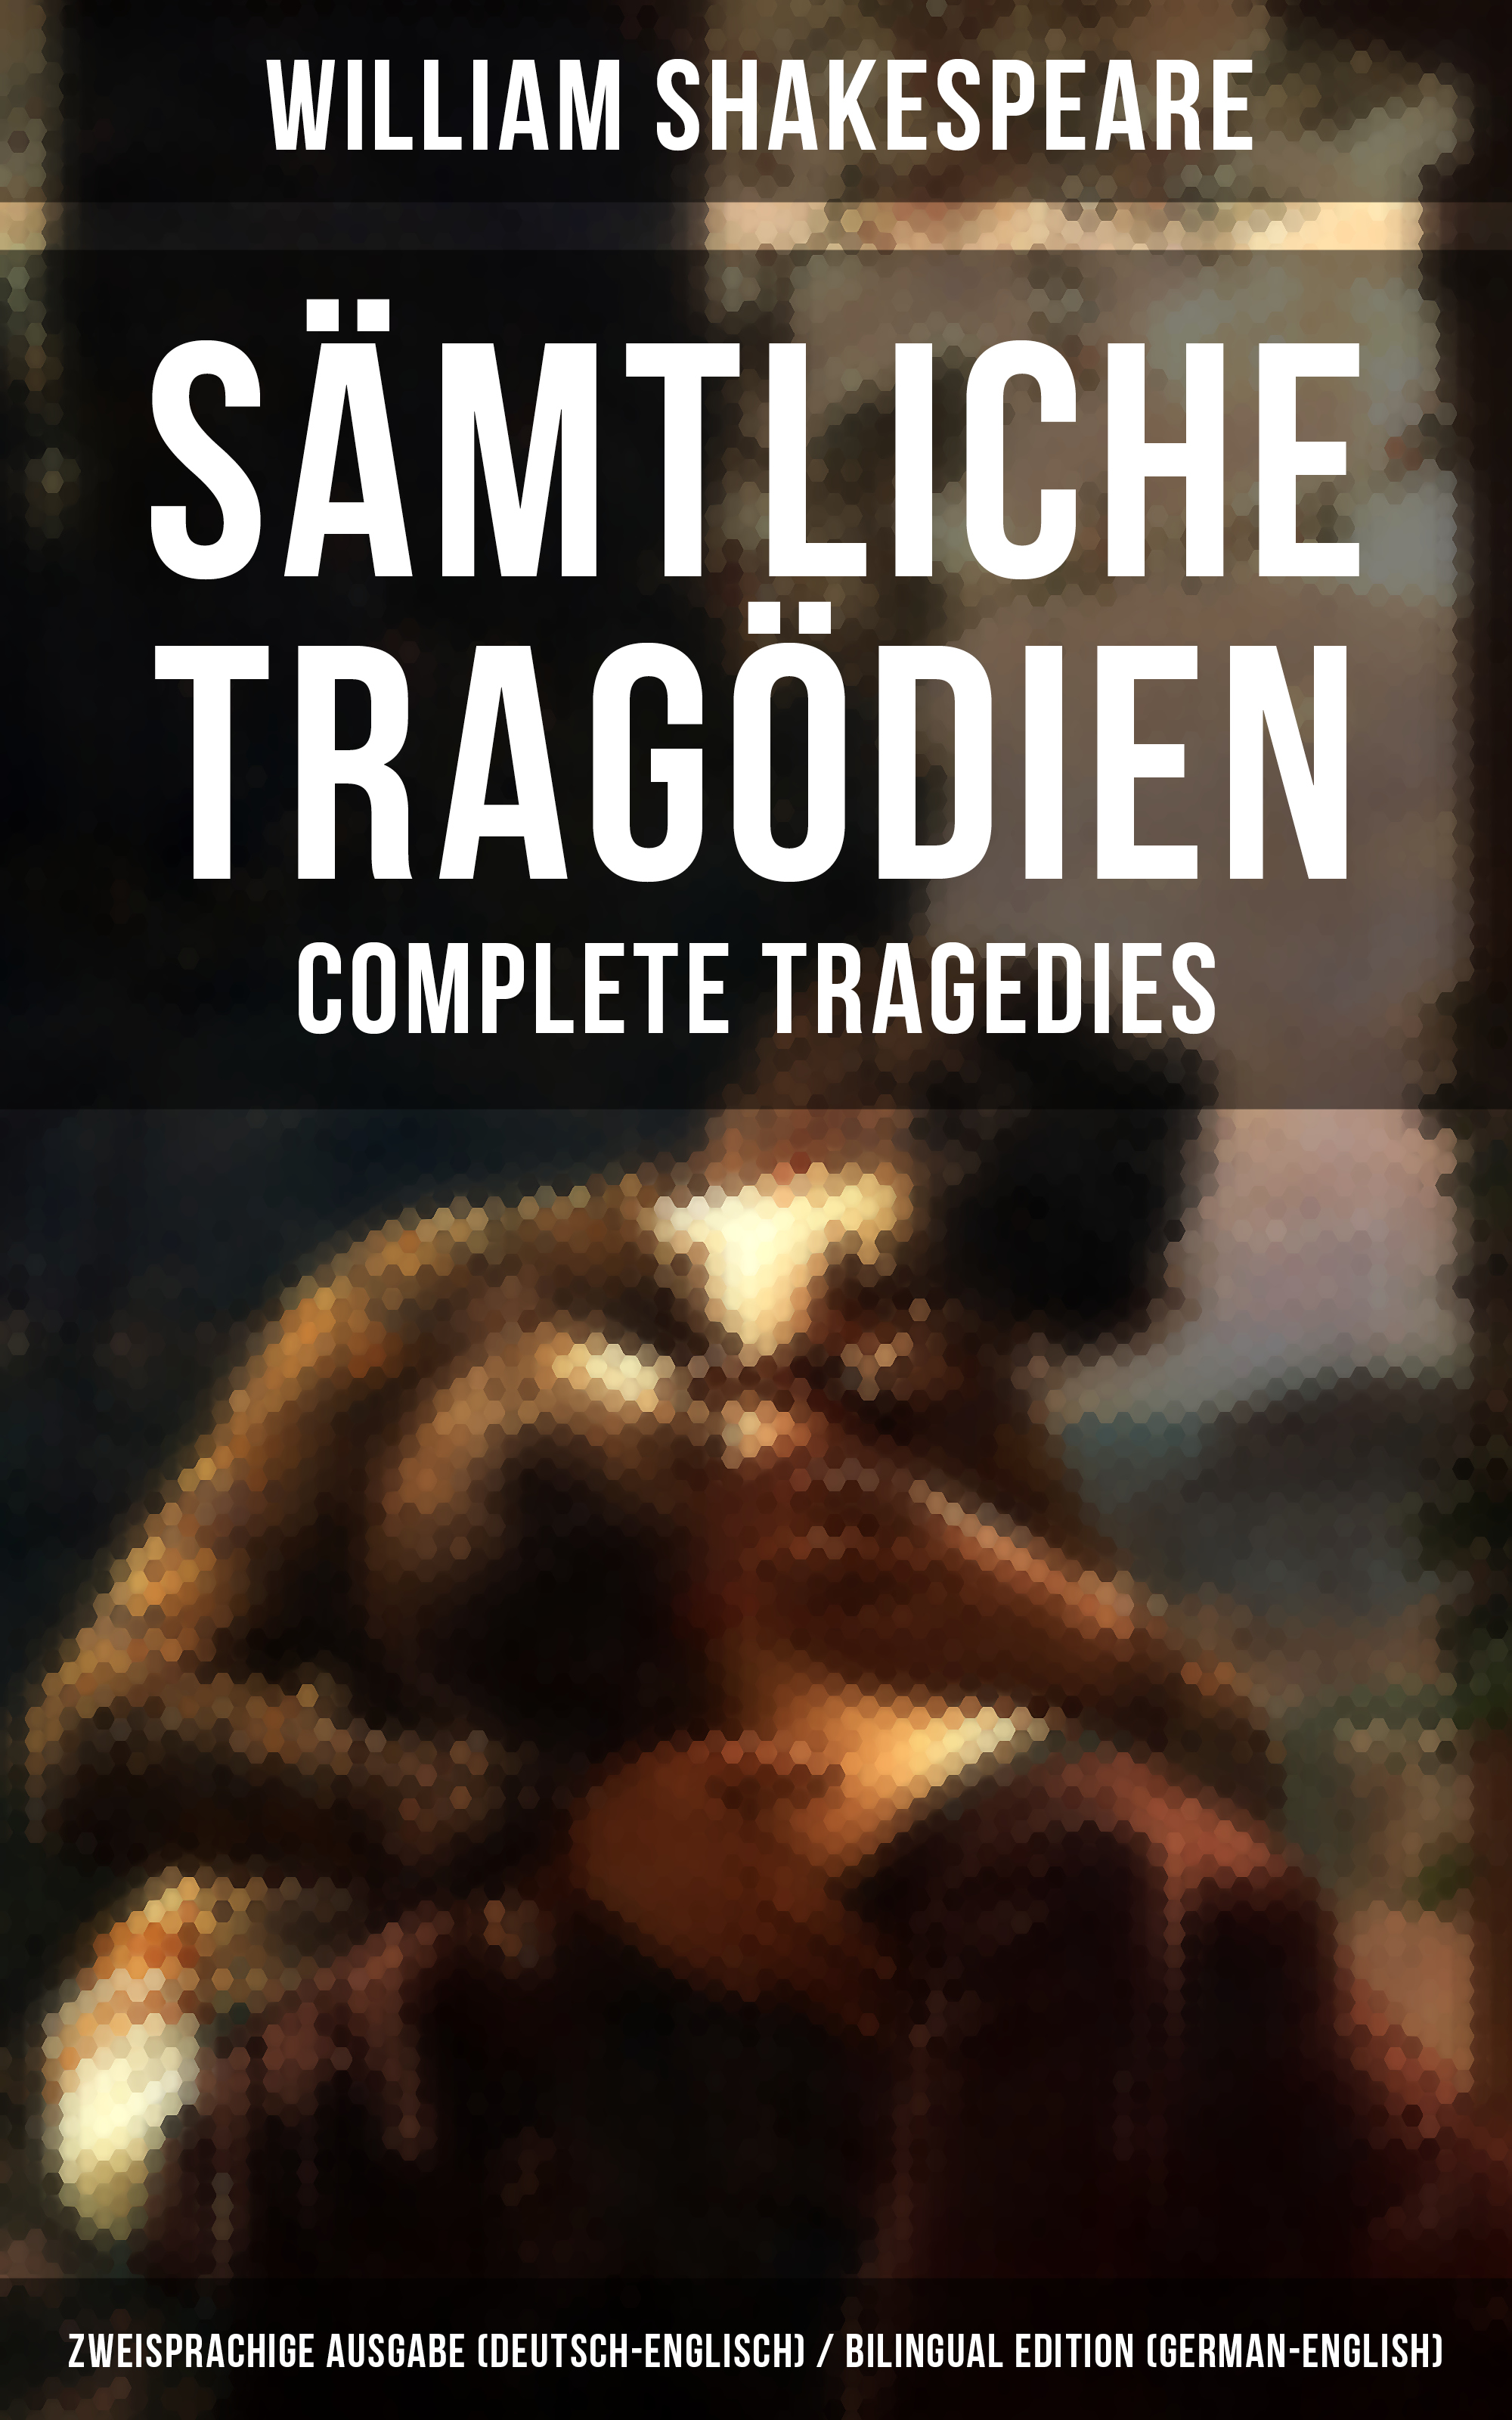 samtliche tragodien complete tragedies zweisprachige ausgabe deutsch englisch bilingual edition german english